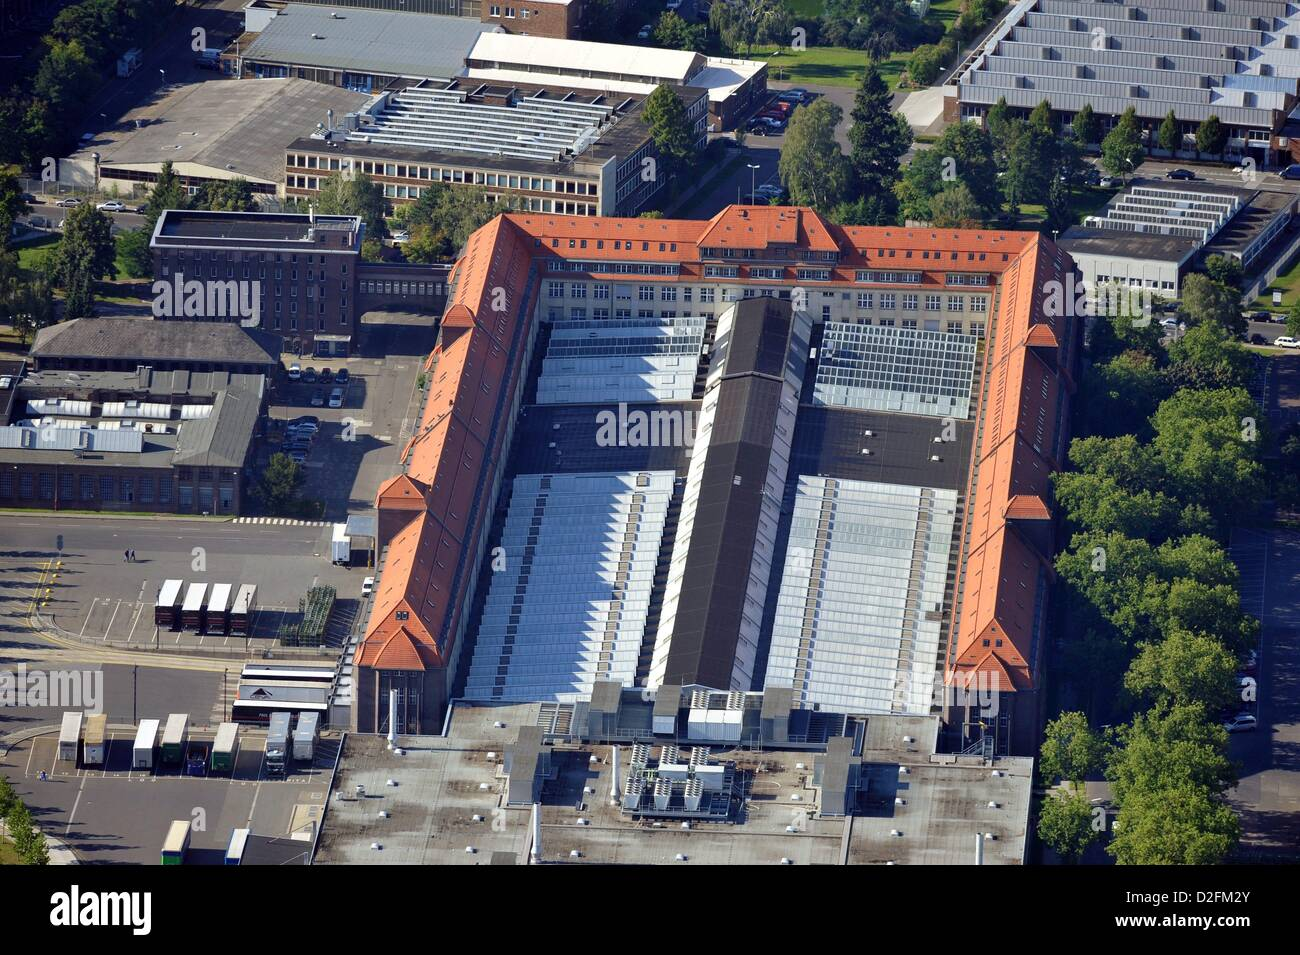 View on building 70 on the grounds of the Mercedes-Benz plant Berlin-Marienfelde on 14 August 2012. - Stock Image